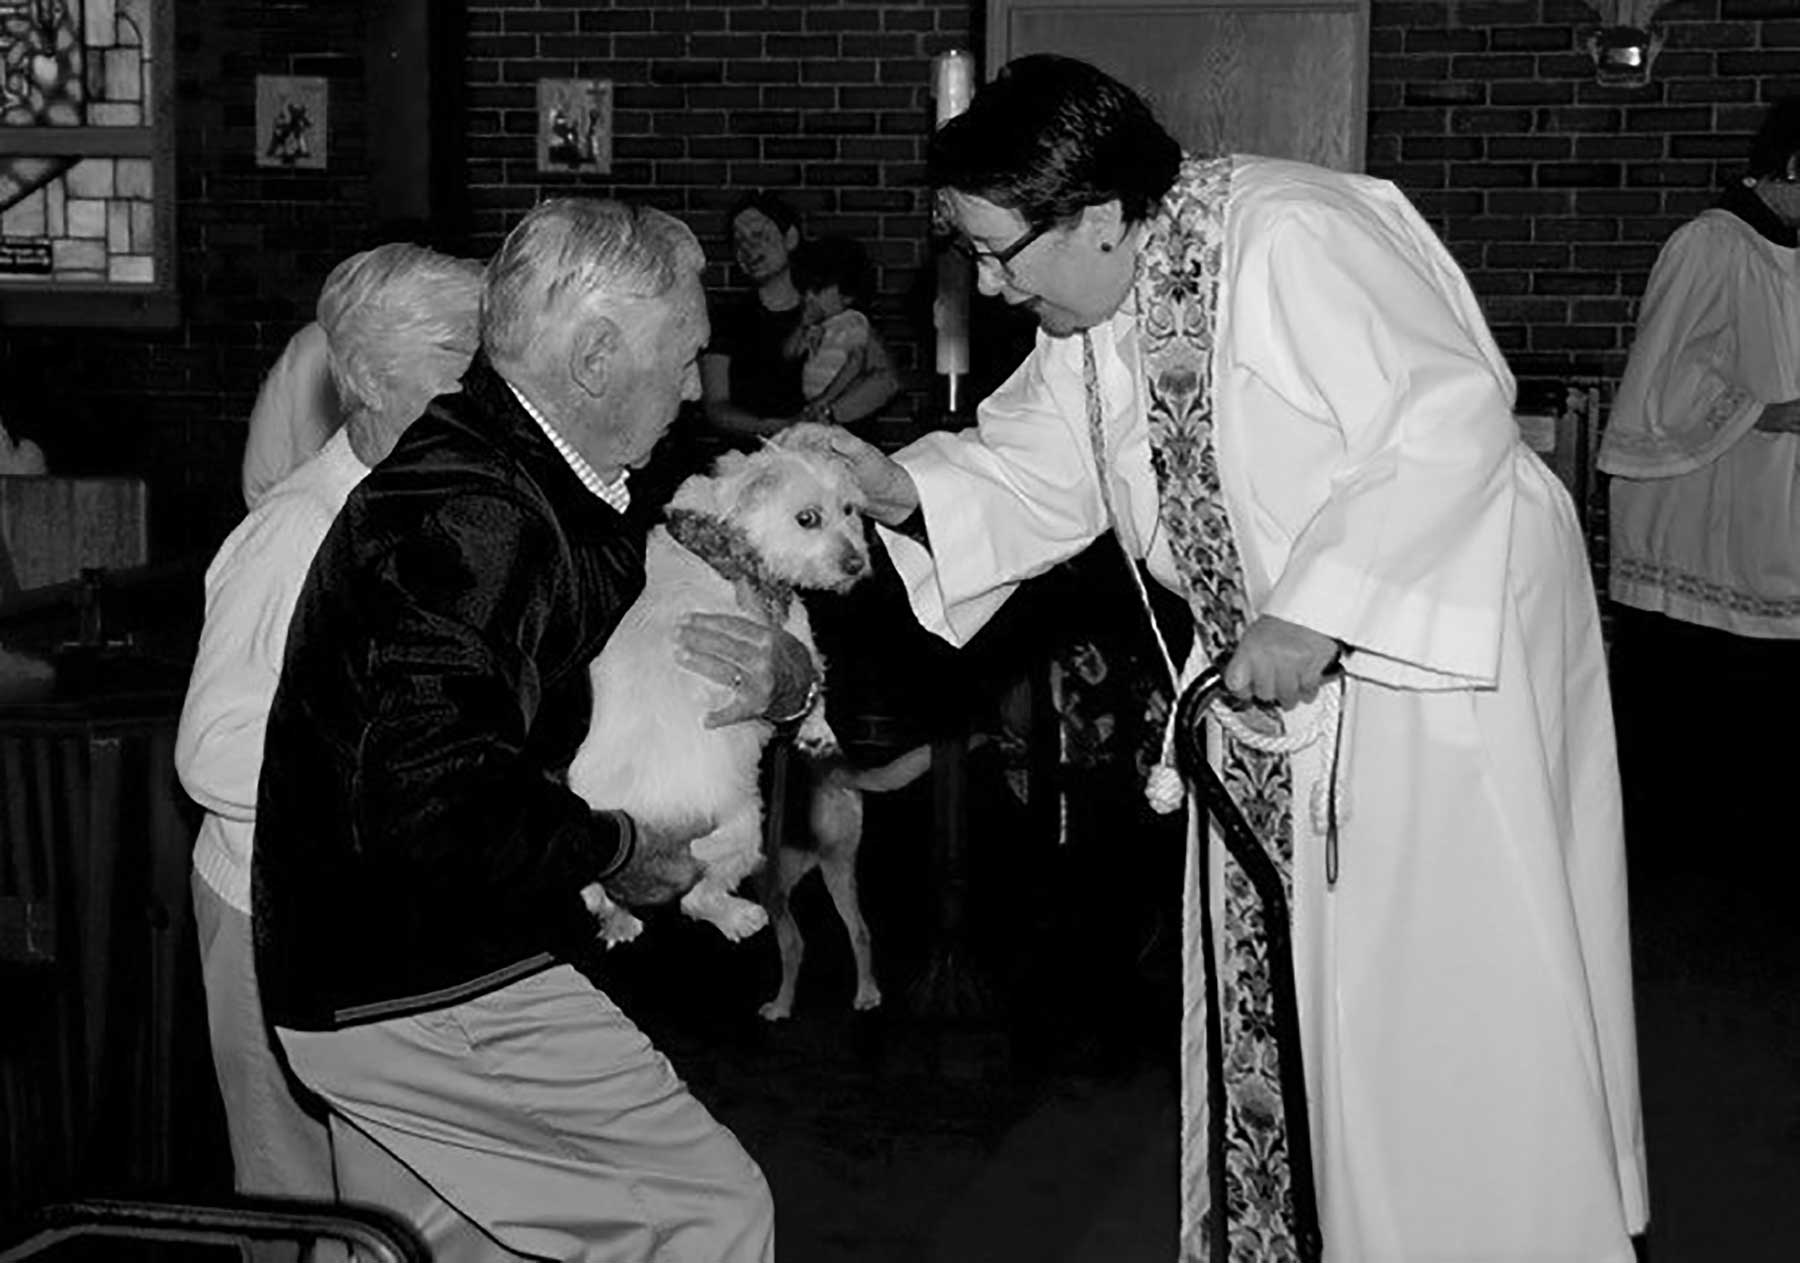 The Church of the Good Shepherd Welcomes Director of Music, Announces the Blessing of the Animals